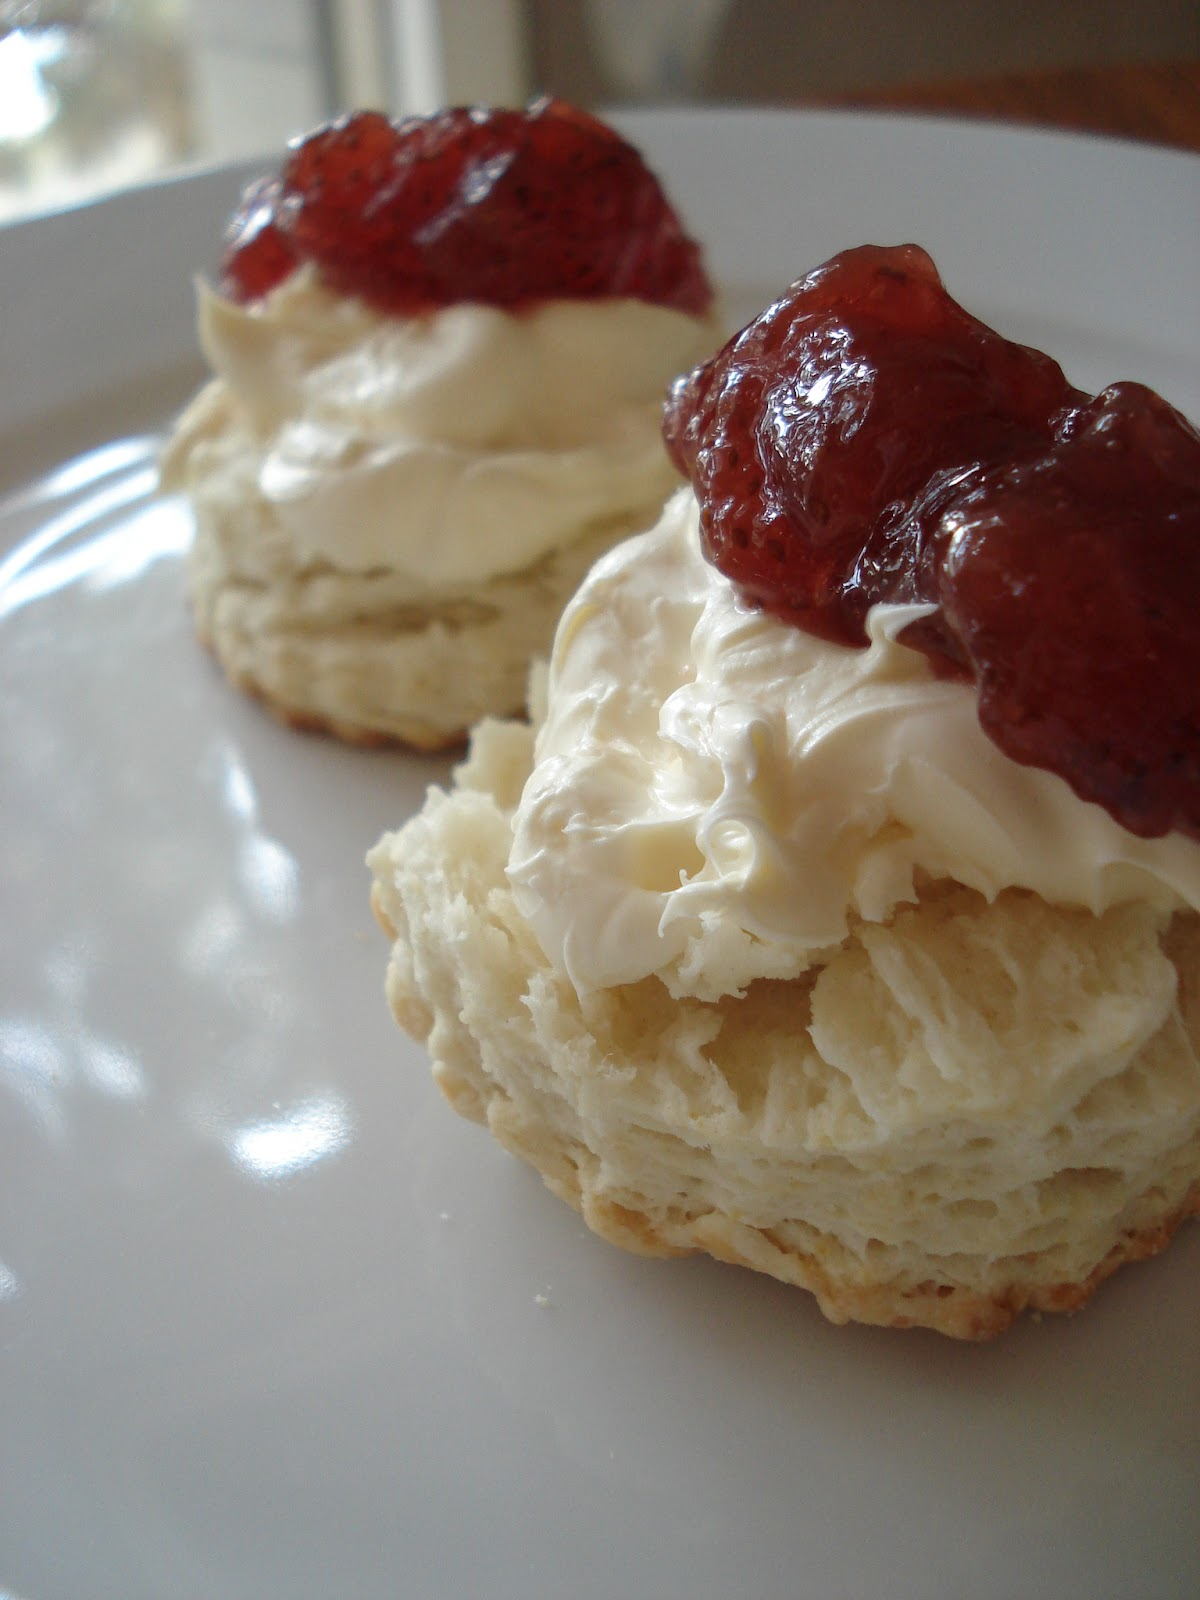 ... : Buttermilk Biscuits w/ English Clotted Cream + Strawberry Preserves